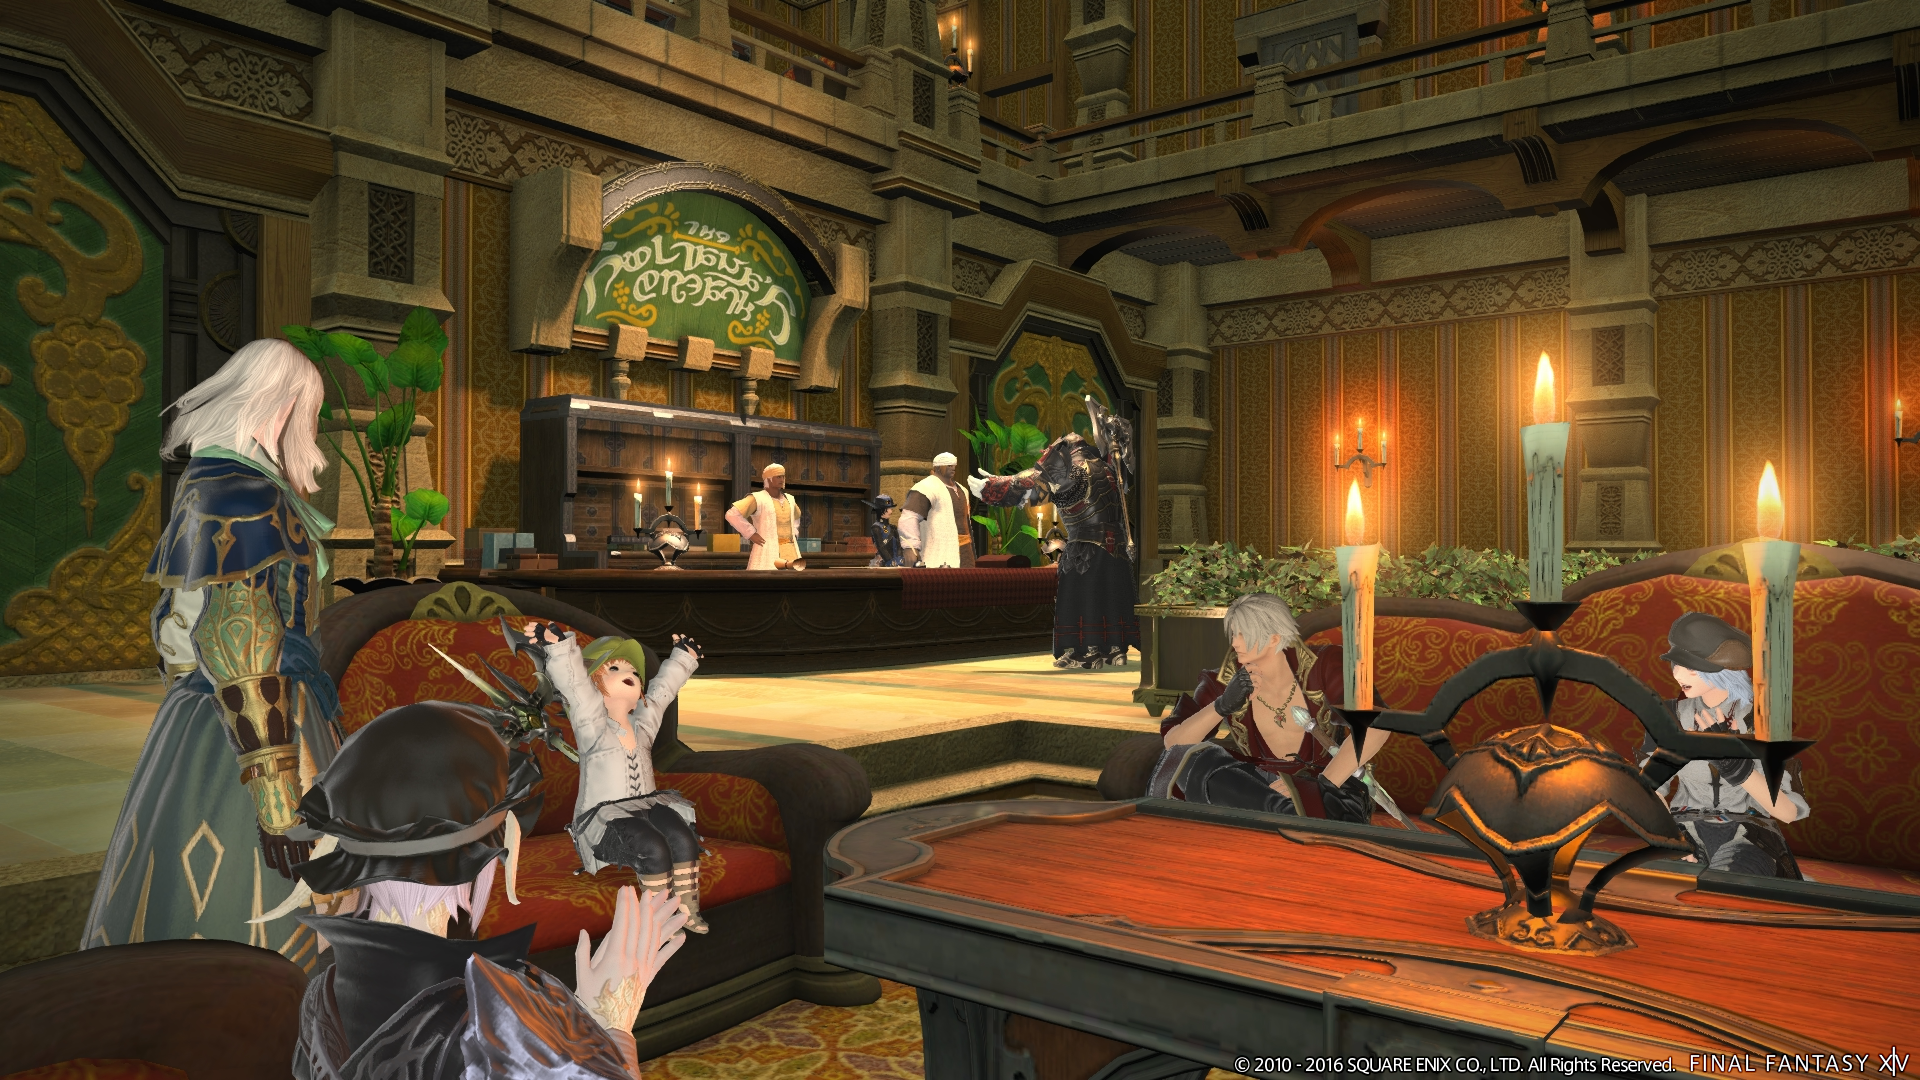 Final Fantasy 14 Patch 3.4 'Soul Surrender' Adds Apartments and More